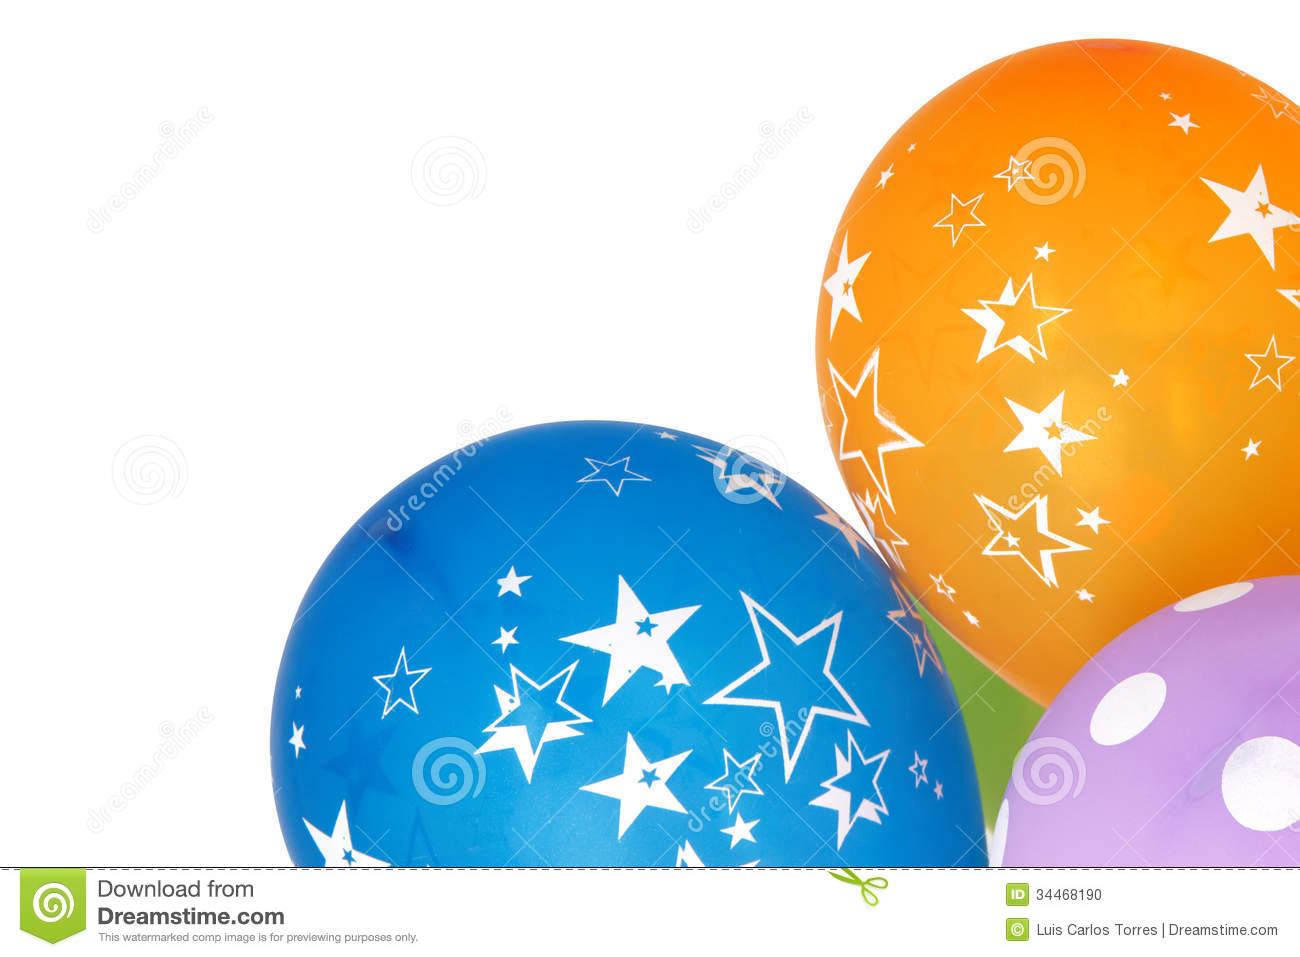 Ballons for celebrations isolated on white background from right side.